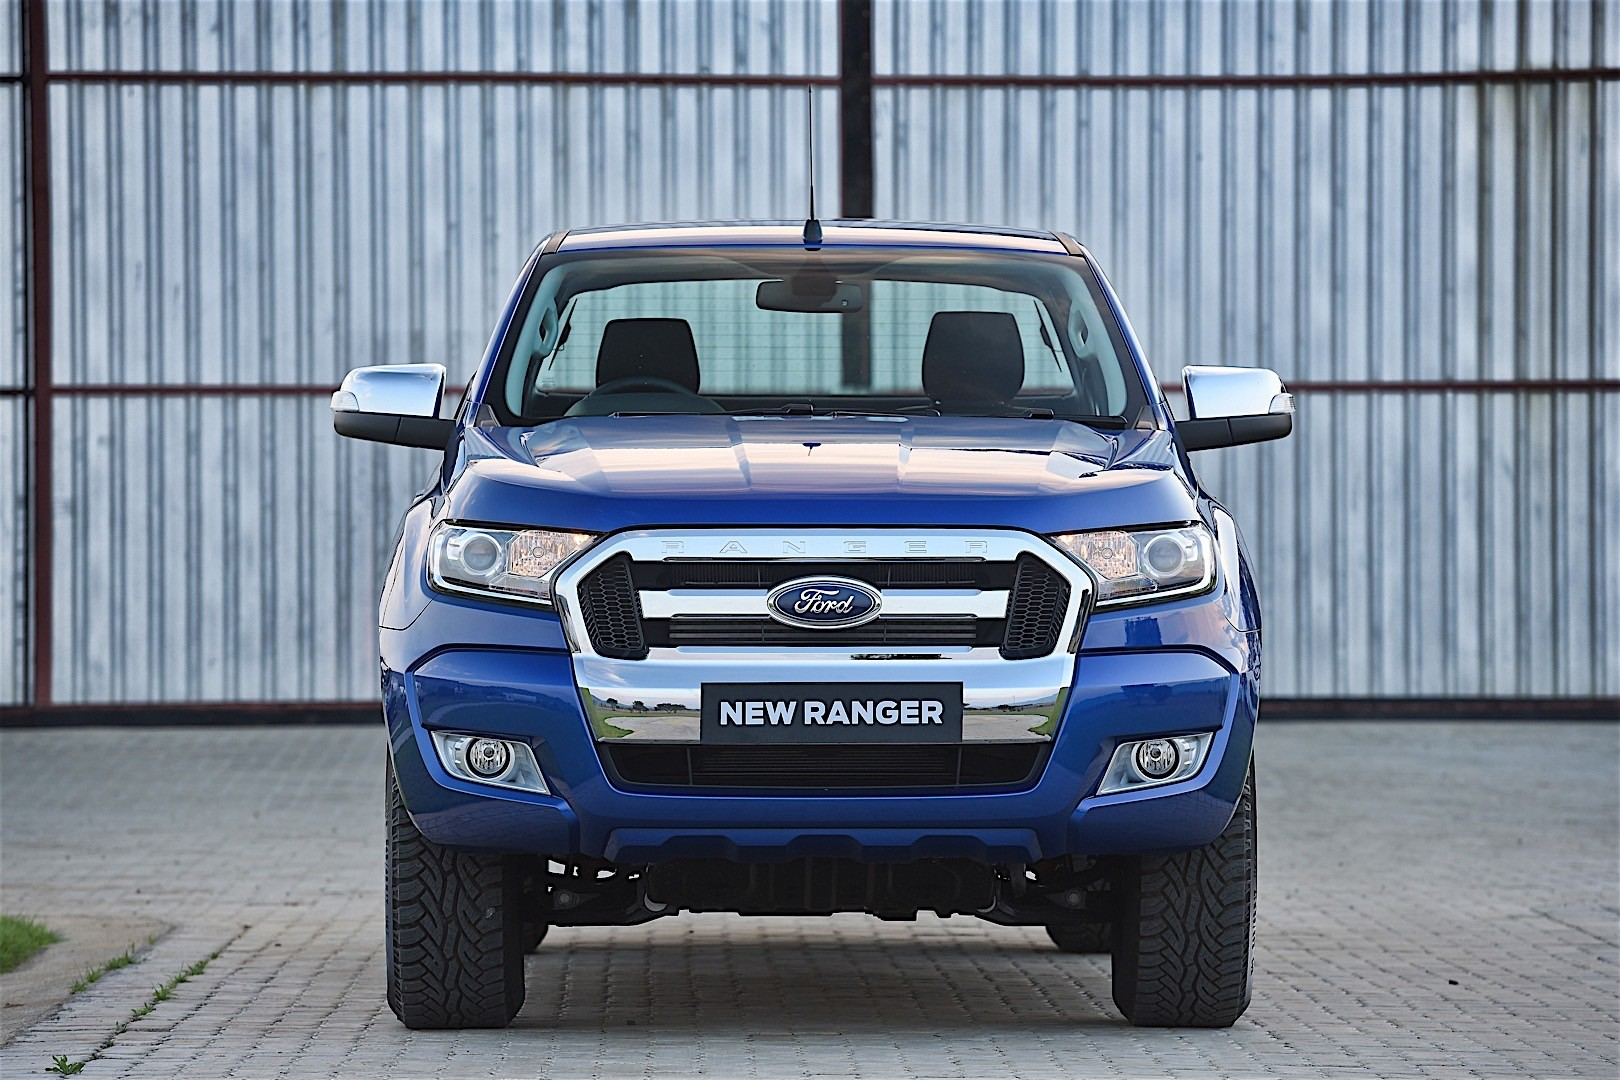 ford ranger super cab specs  u0026 photos - 2015  2016  2017  2018  2019  2020